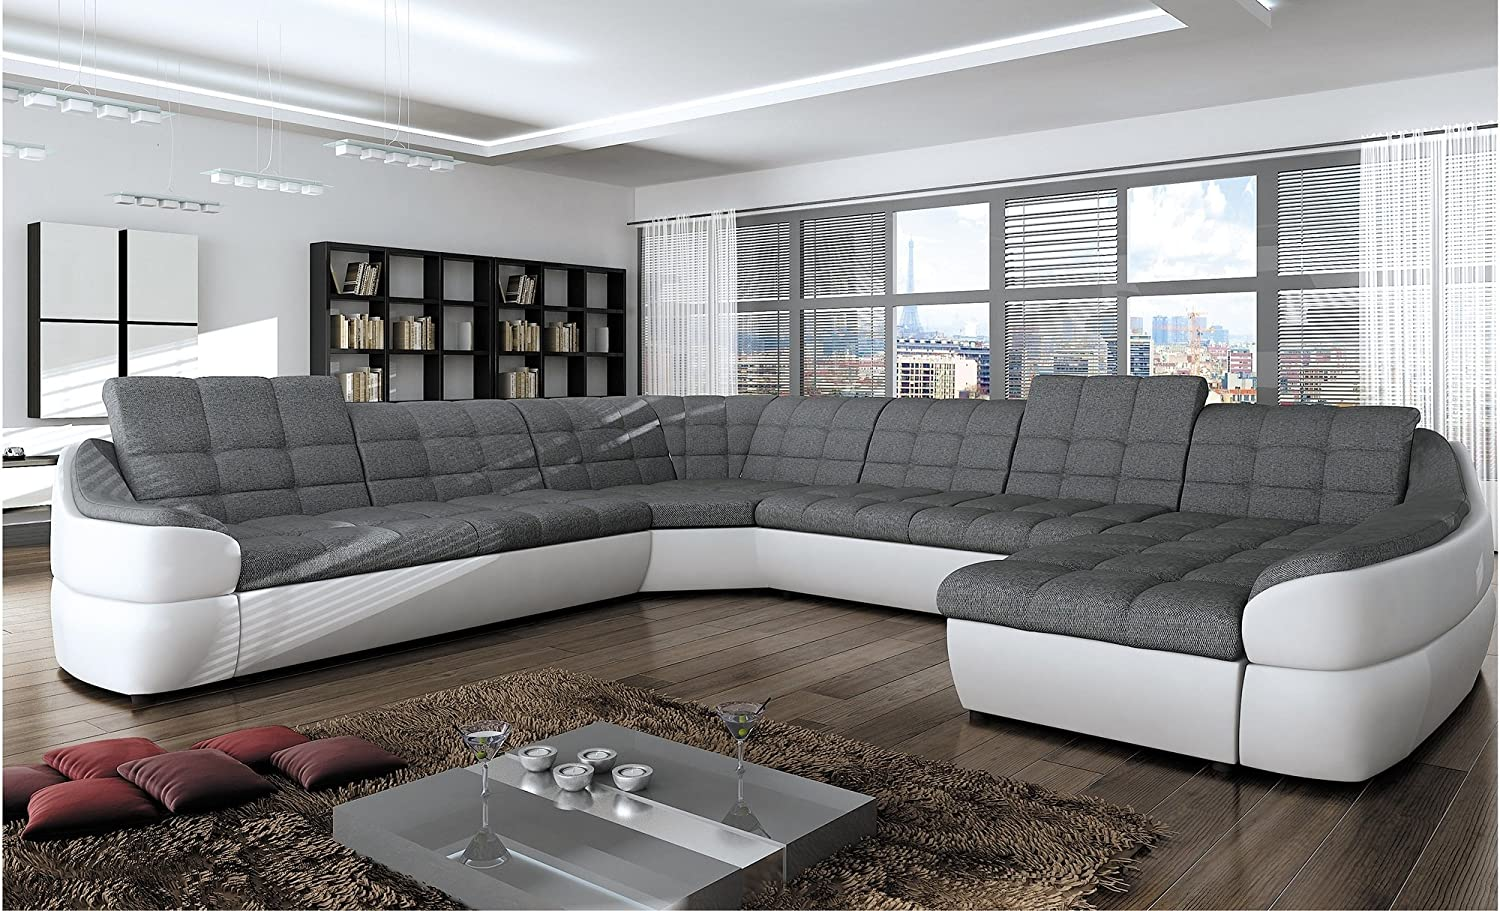 6 Seater Corner Lounge With Sofa Bed Review